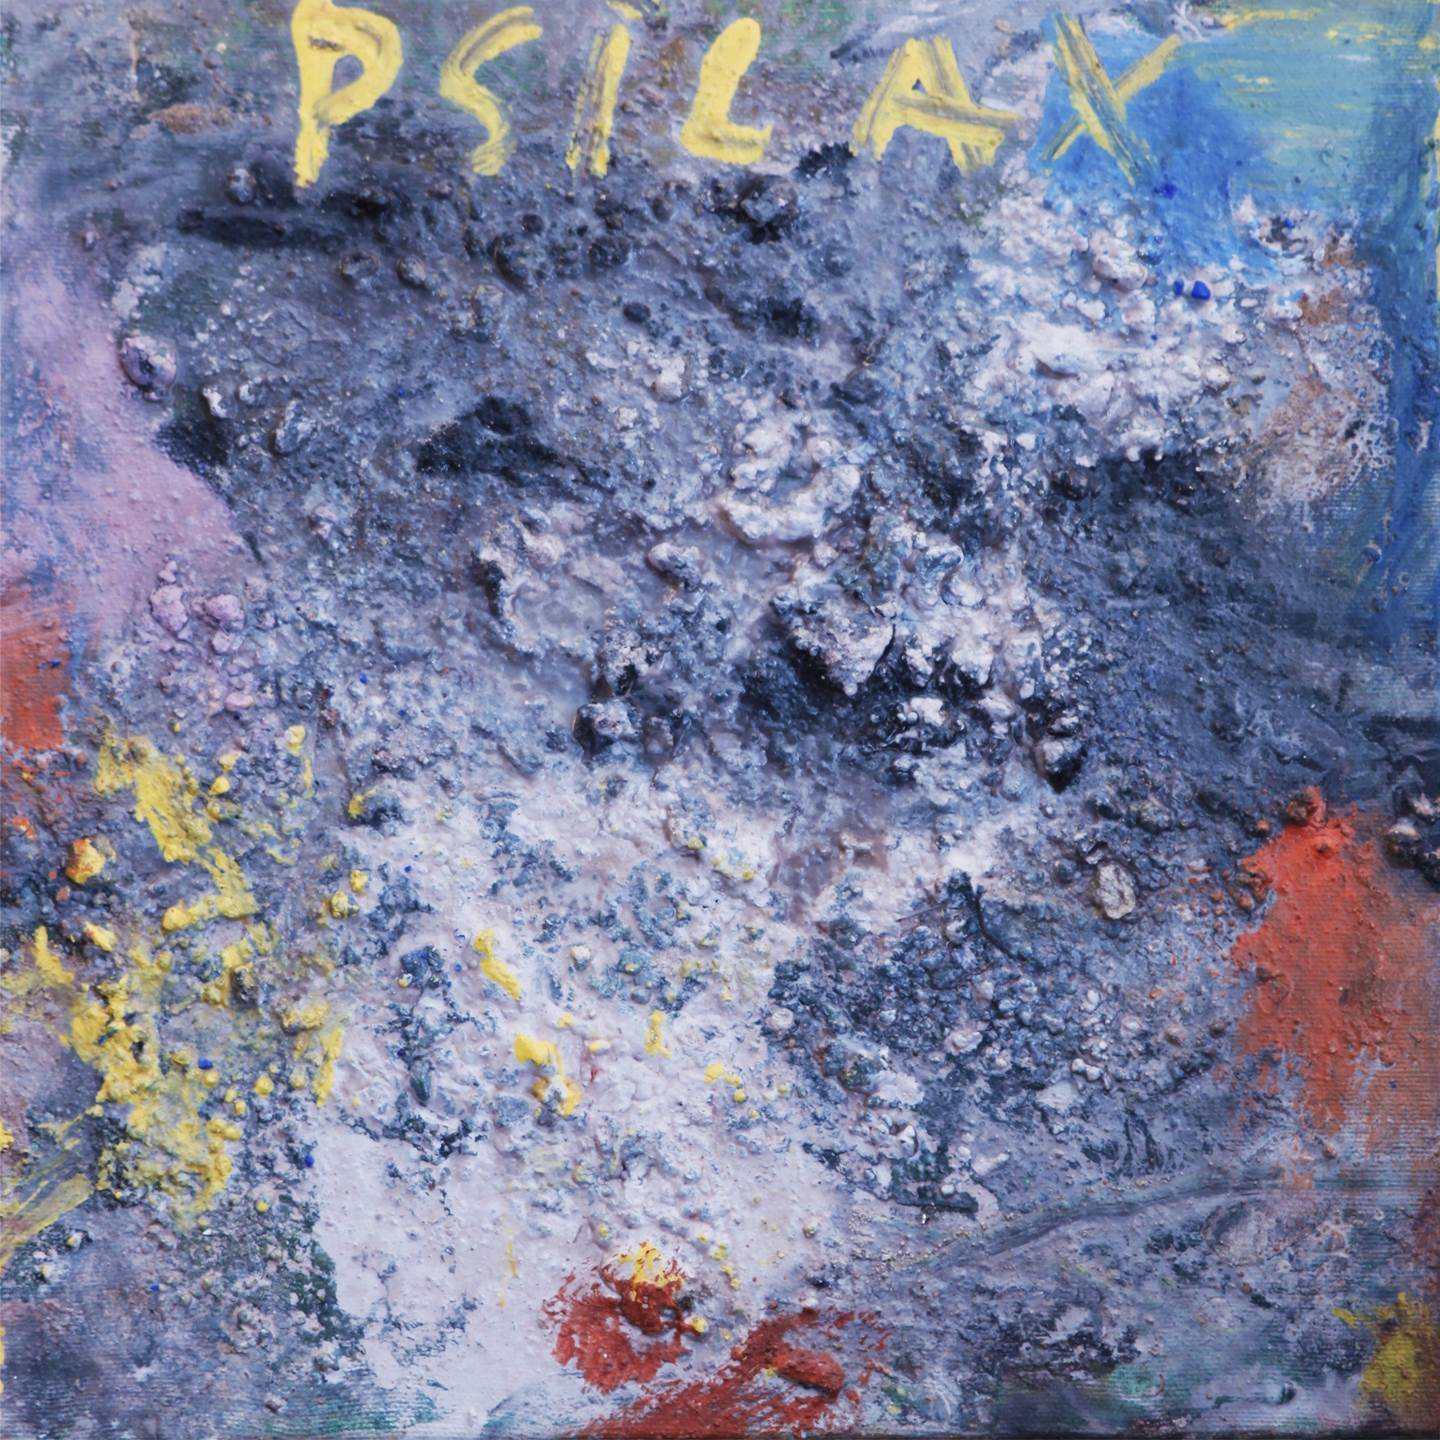 Psilax, original Abstract Canvas Painting by Alexandre Rola